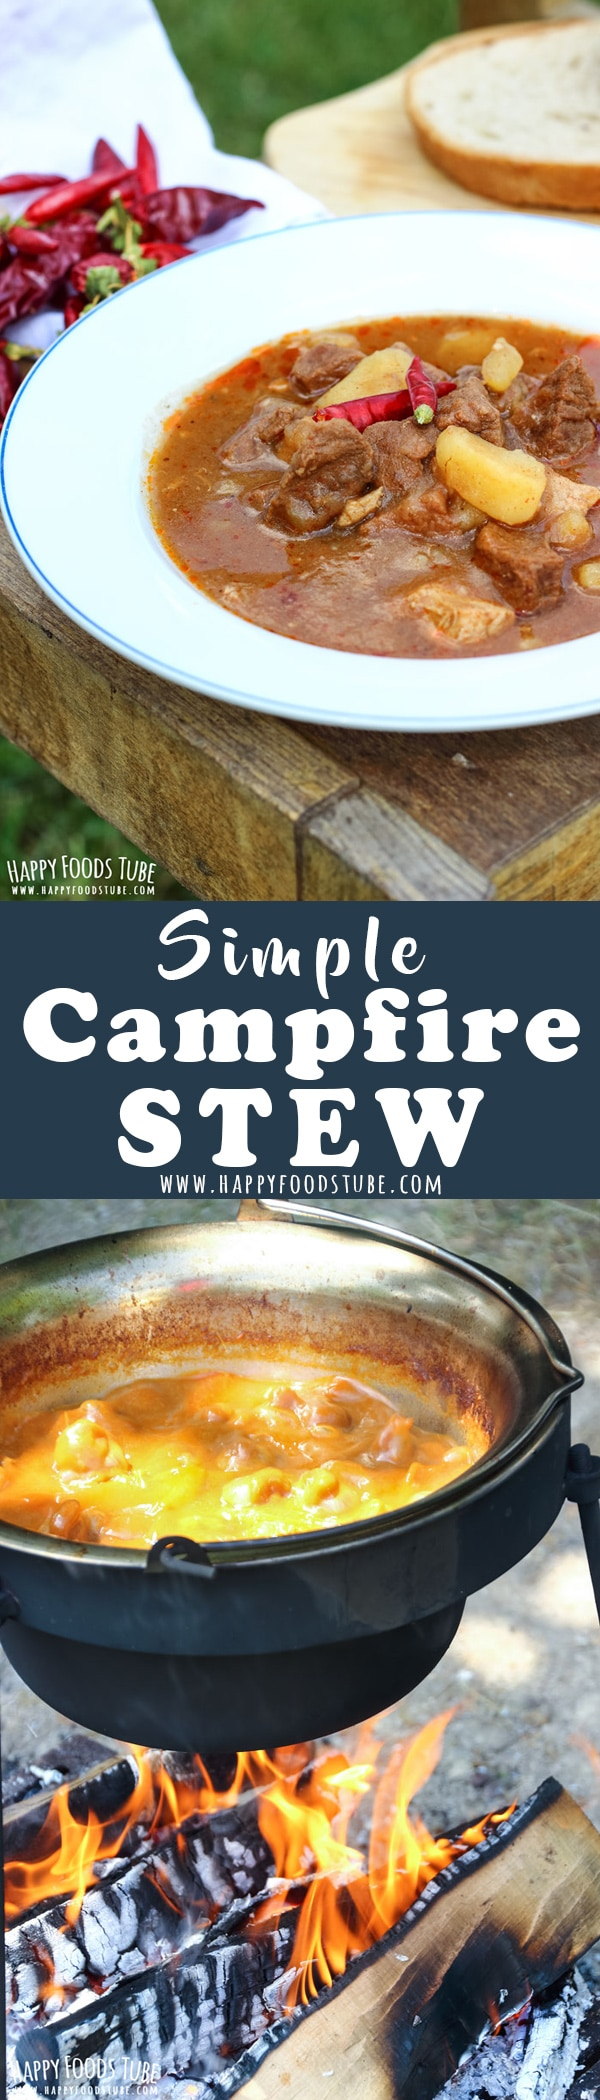 This simple campfire stew is the best and simplest feed-a-crowd recipe. Imagine meaty stew cooked slowly over fire. It can't get any better than this. How to make campfire stew